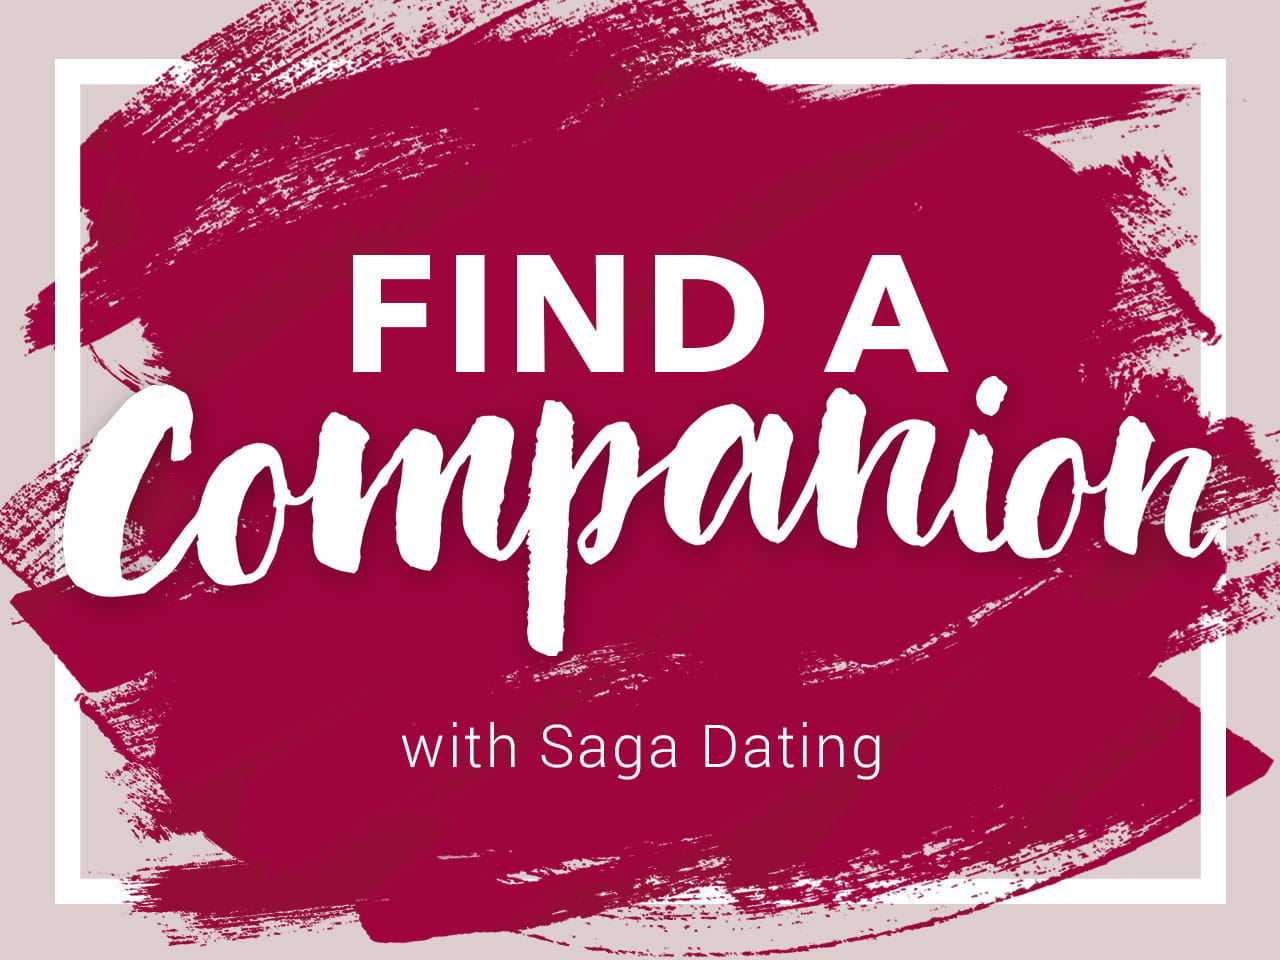 saga dating The sociopath will work hard to at first groom you, then once they have ownership and control over you, will ensure that they maintain possession of you the sociopath will most commonly pull the most elaborate sickness saga tale, when they are either about to be caught in a lie, or when they have.